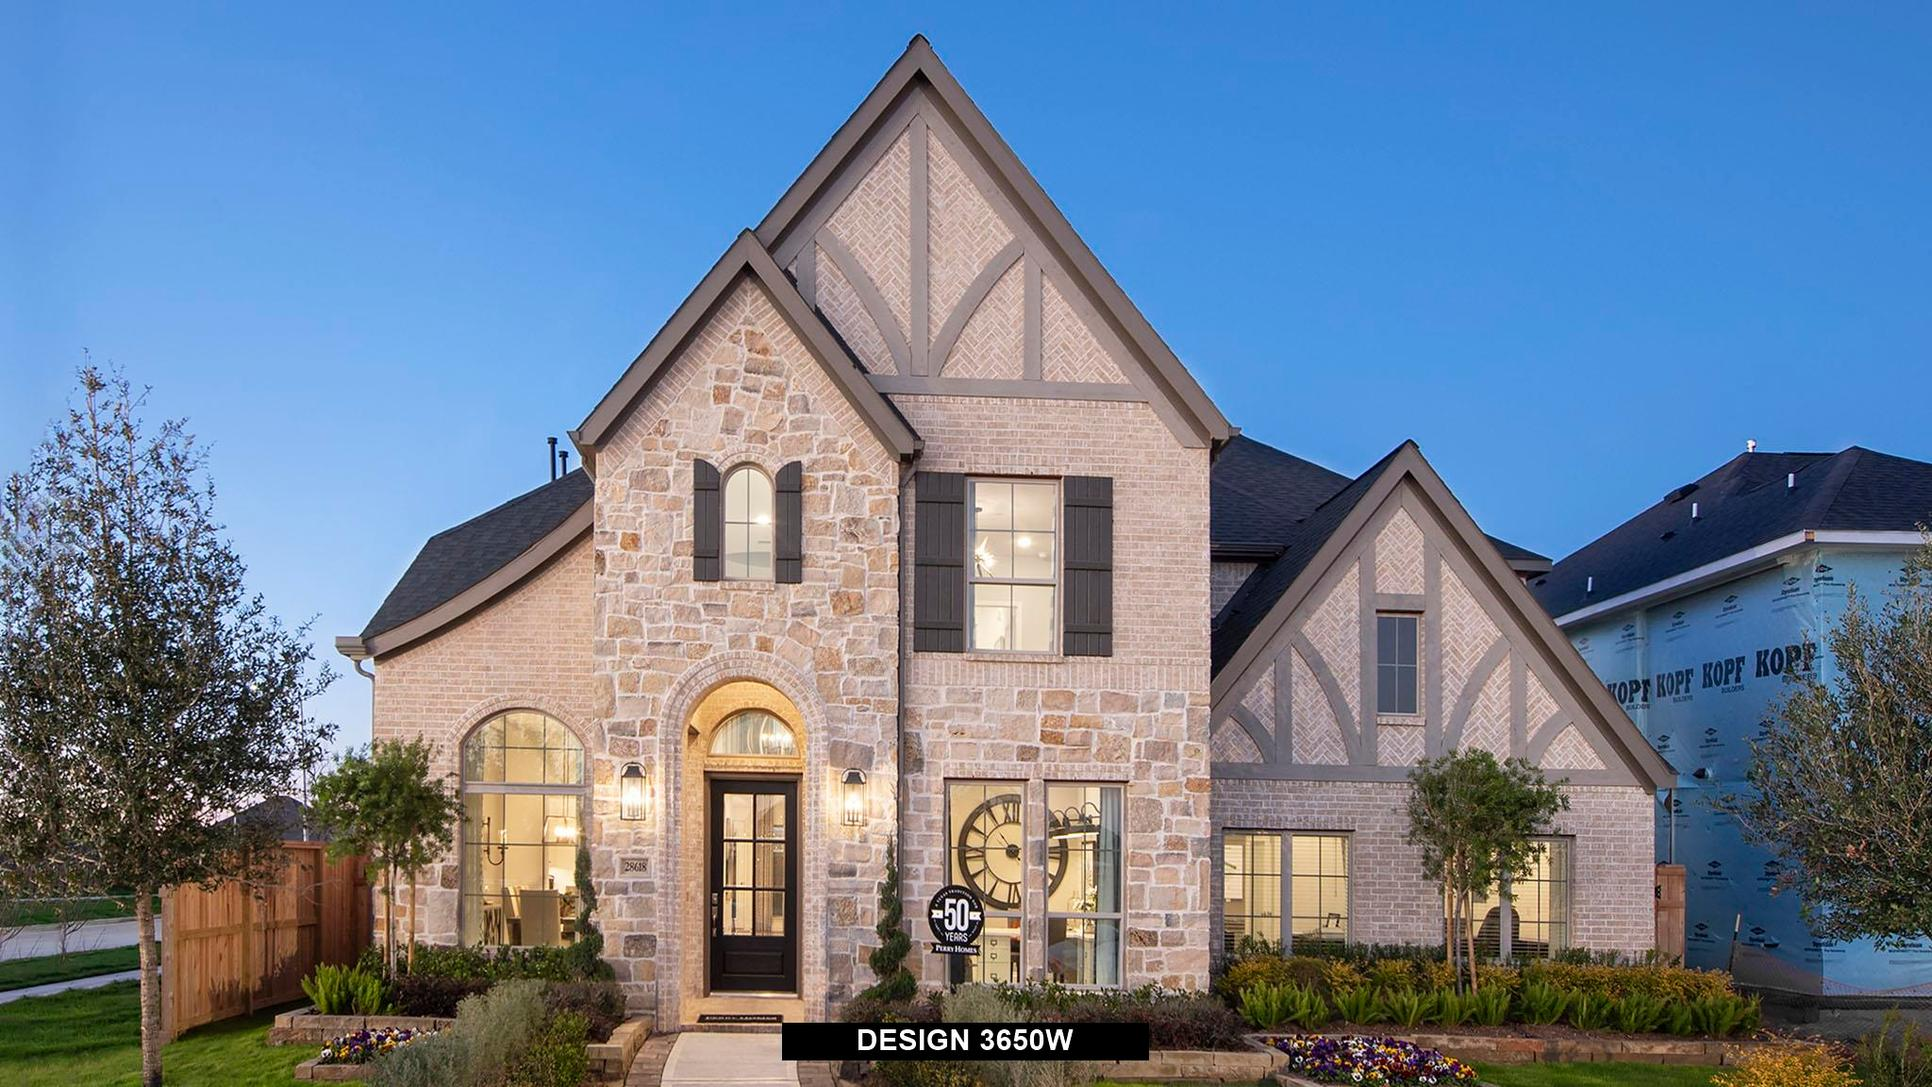 Plan 3650W:Representative photo.  Features and specifications may vary by community.